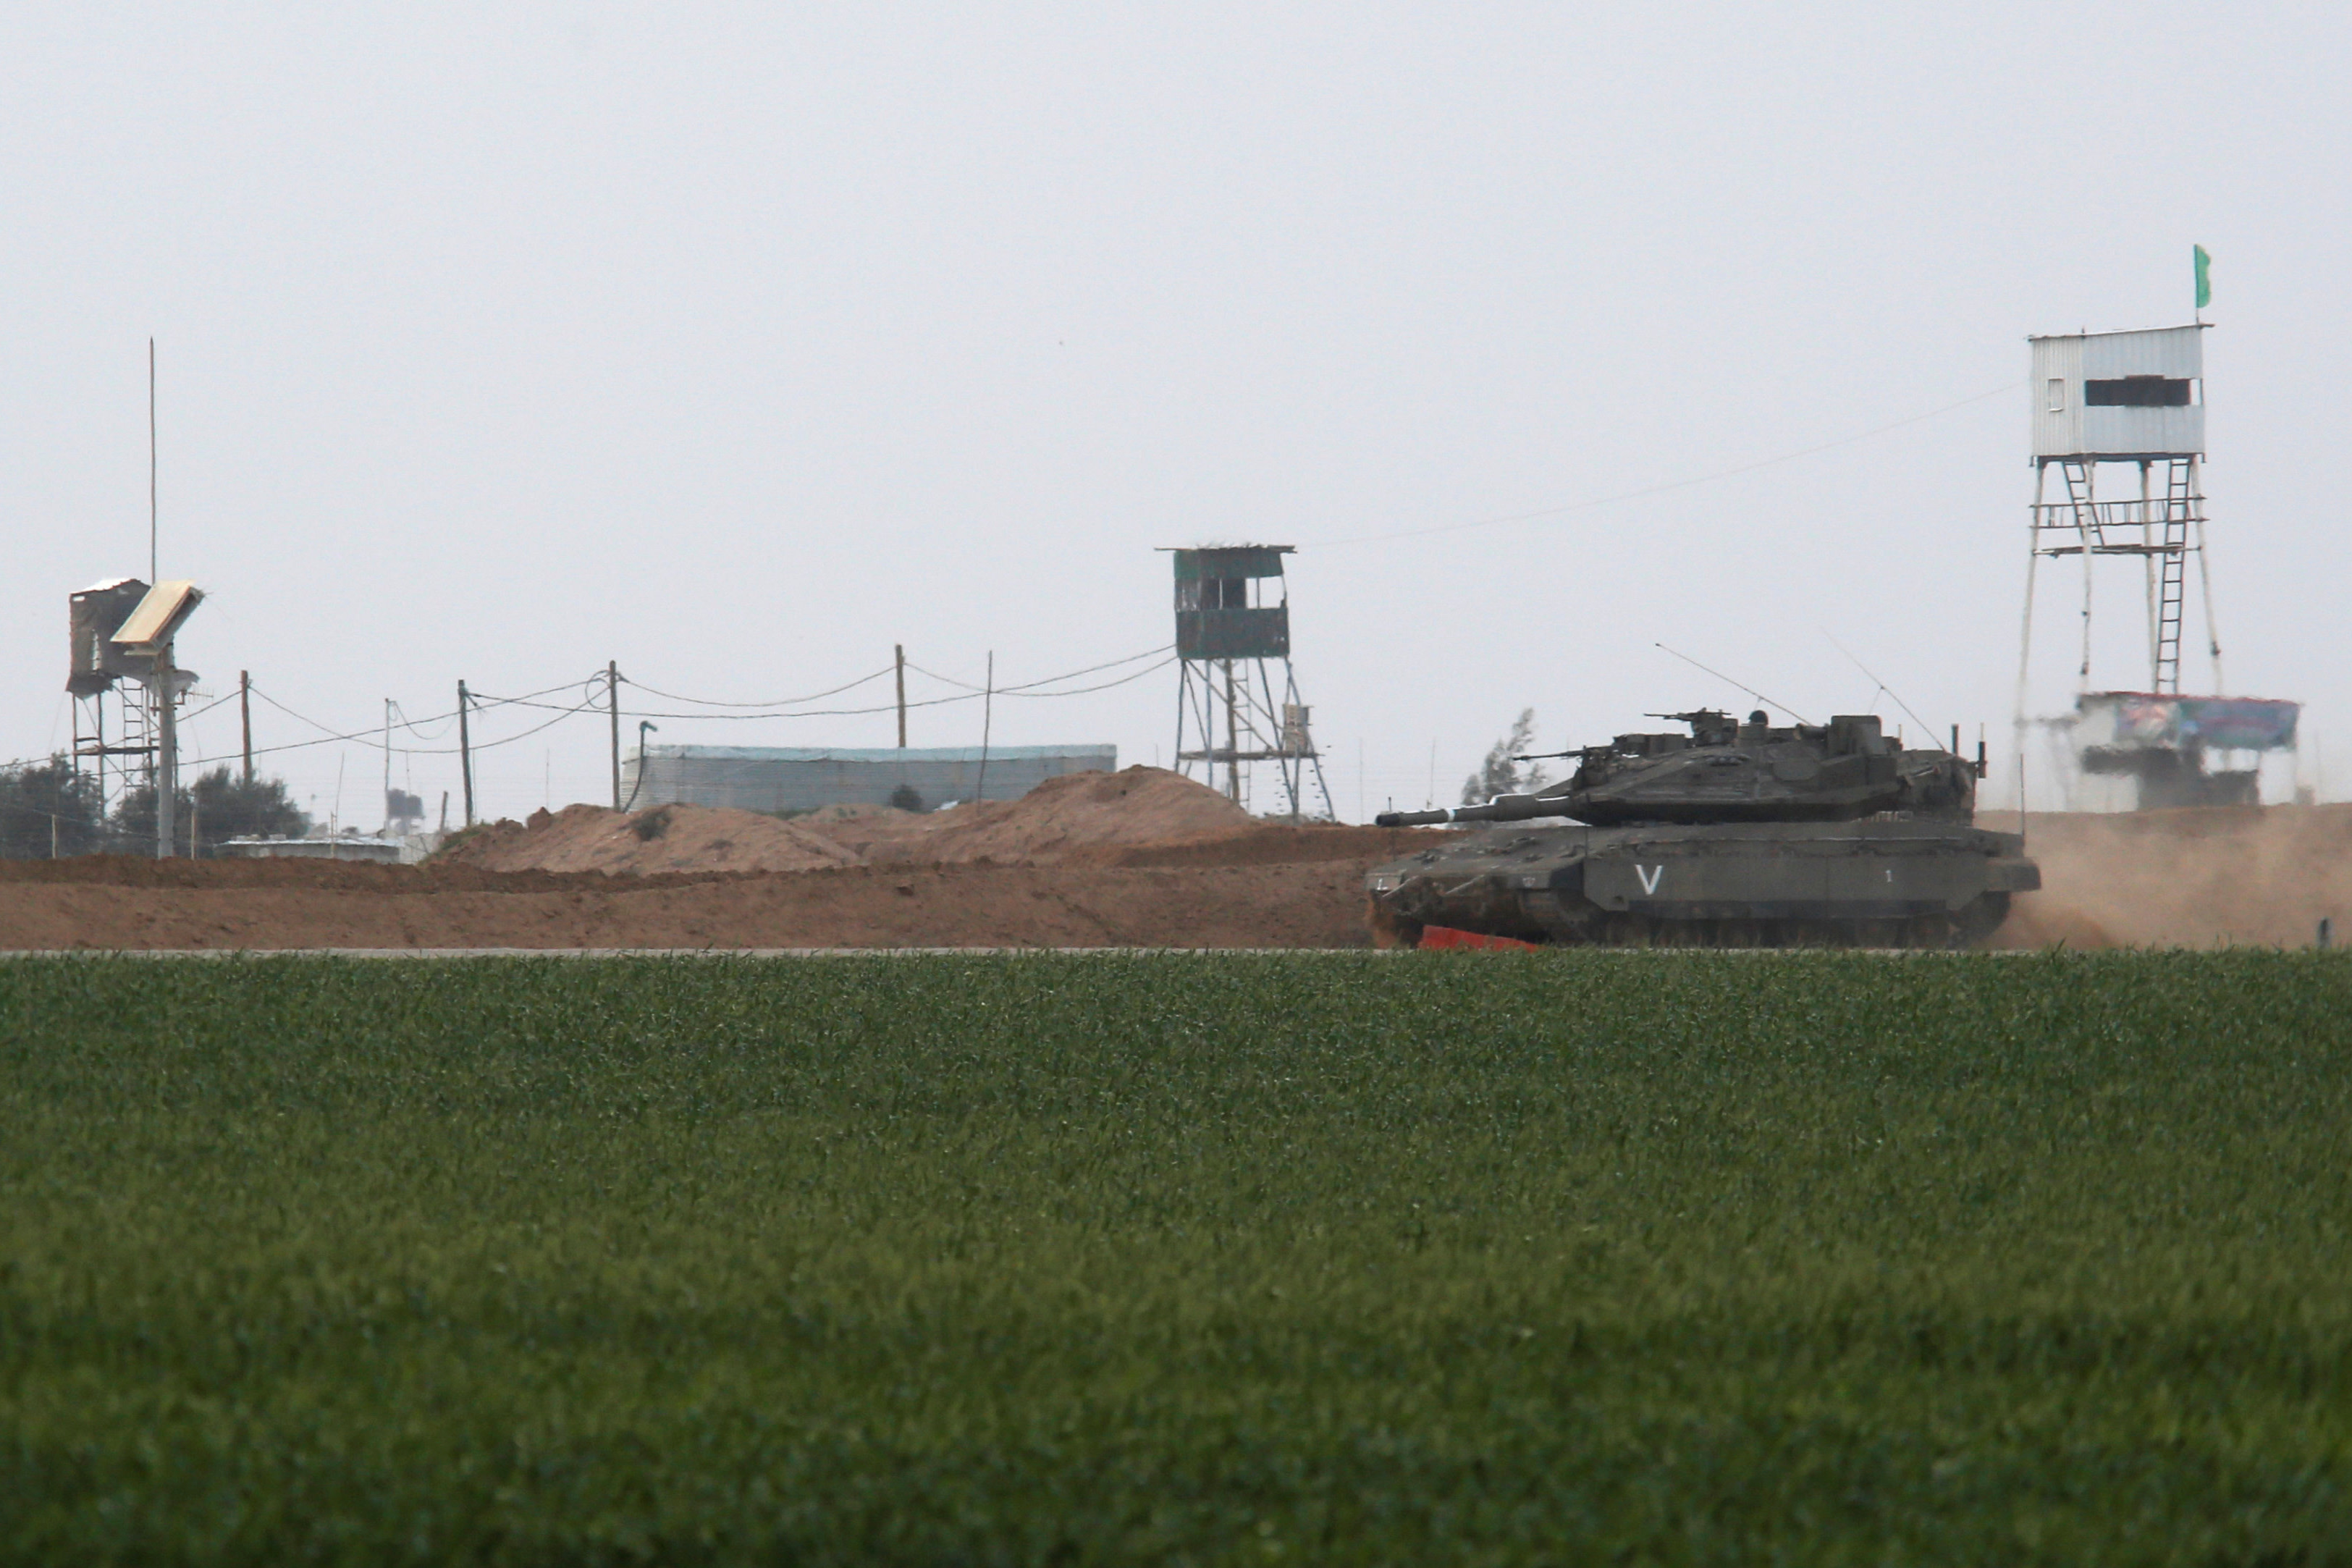 An Israeli tank manoeuvres along the border fence with the southern Gaza Strip, as watch-towers are seen on the Palestinian side near Kibbutz Nirim, Israel February 17, 2018 (Reuters/Amir Cohen)